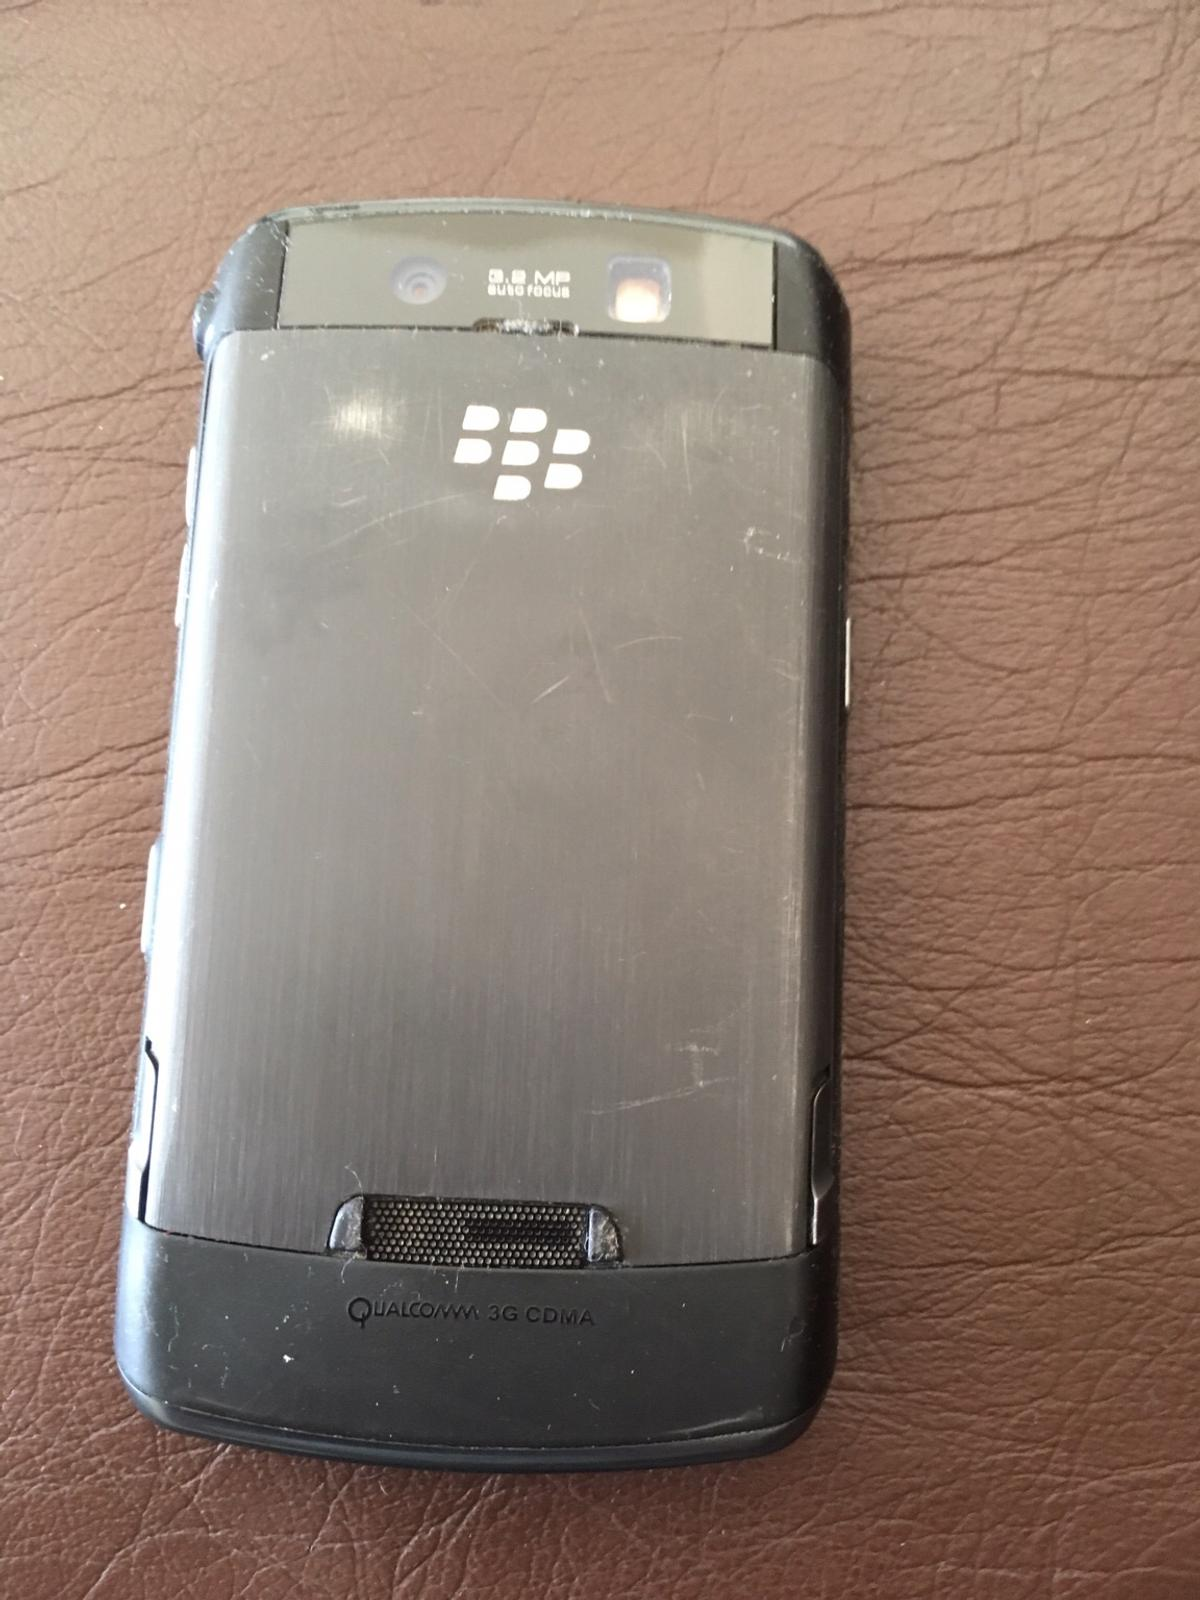 Old Style Vodafone Blackberry Mobile Phone